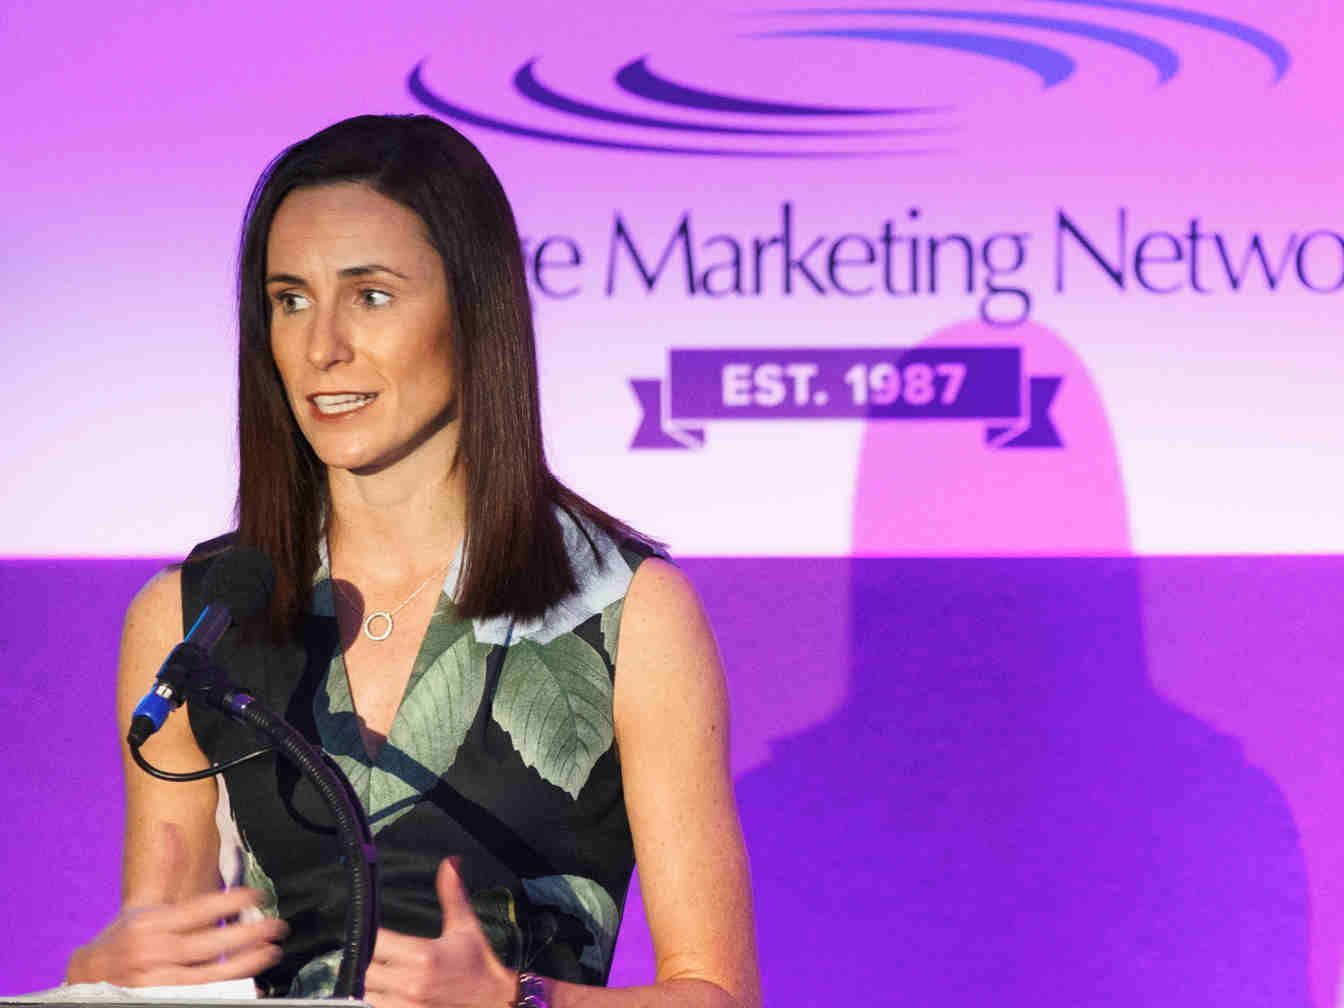 FE First Awards 2018, College Marketing Network, presented by Jo Maher, Principal of Boston College